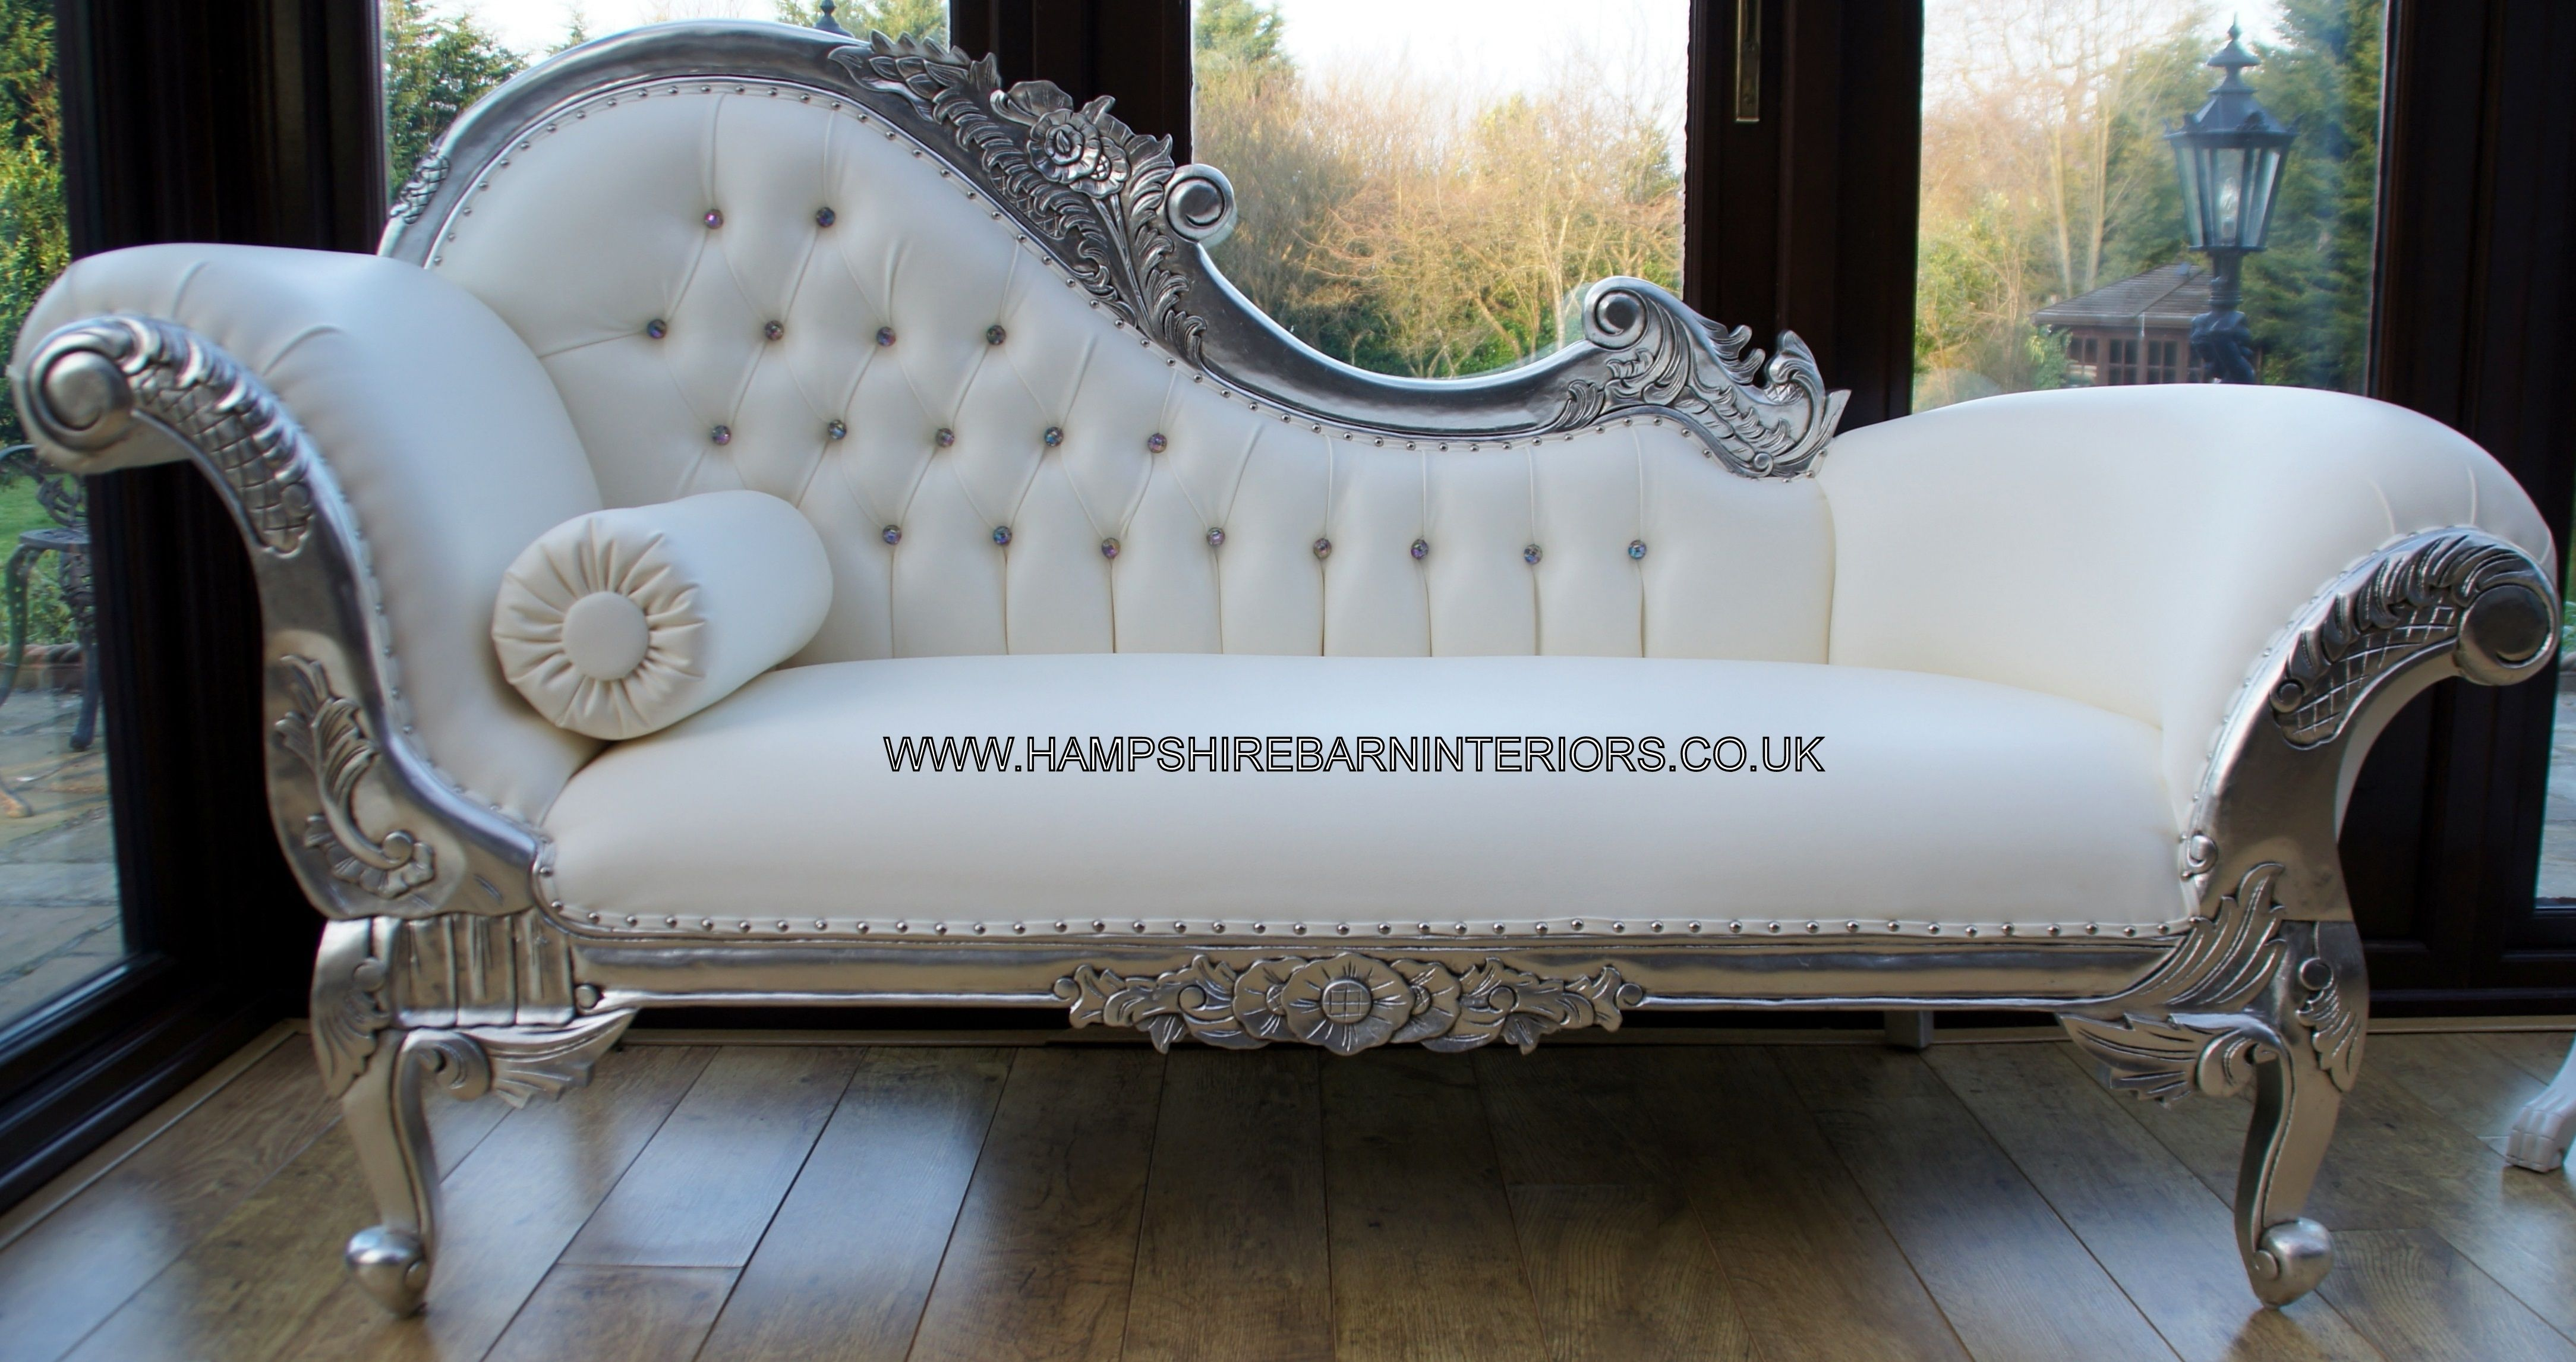 White Leather Chaise Lounge Chairs Silver Living Room Decor White Chaise Lounge Sofa Design